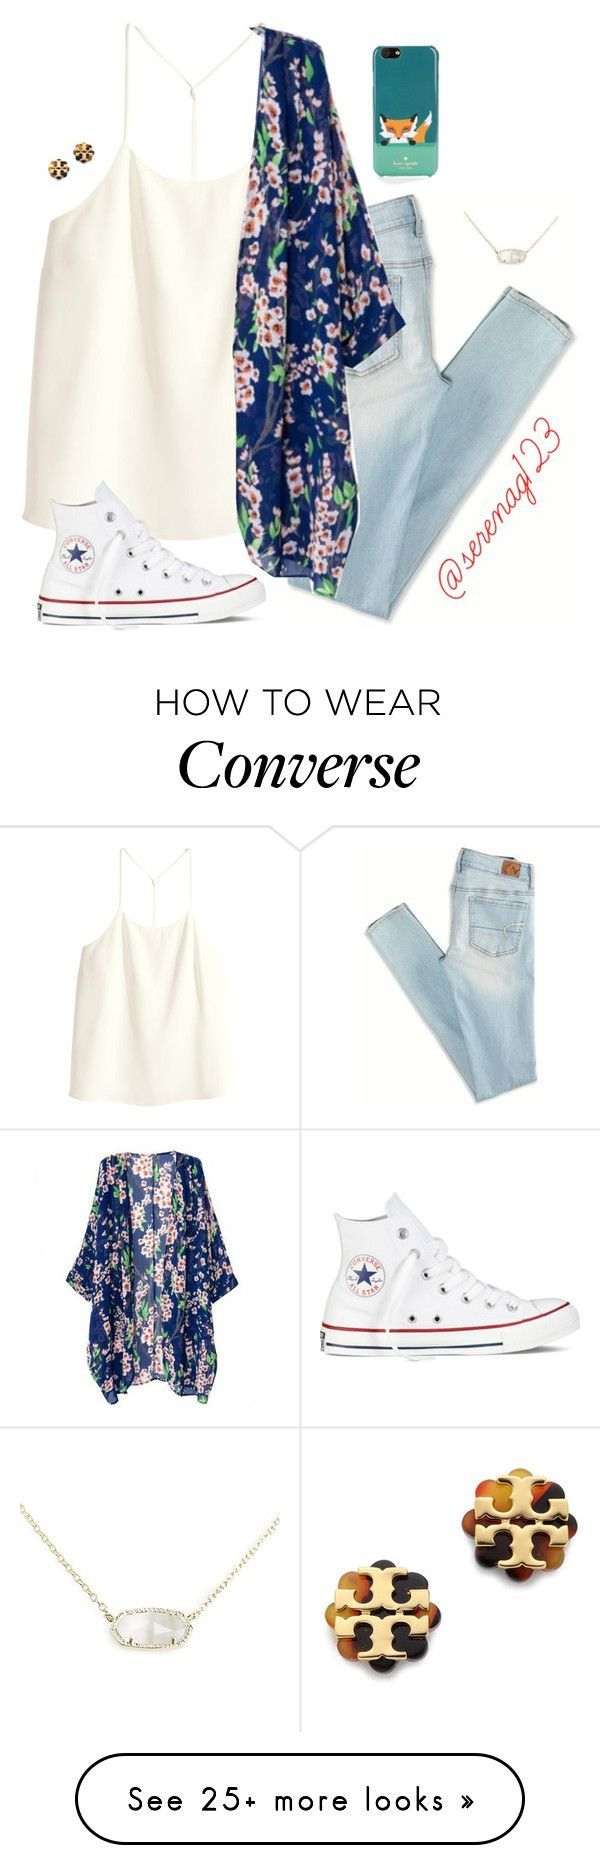 """""""just got this necklace omg i luv it so much"""" by serenag123 on Polyvore featuring American Eagle Outfitters, H&M, Converse, Tory Burch, Kendra Scott and Kate Spade"""